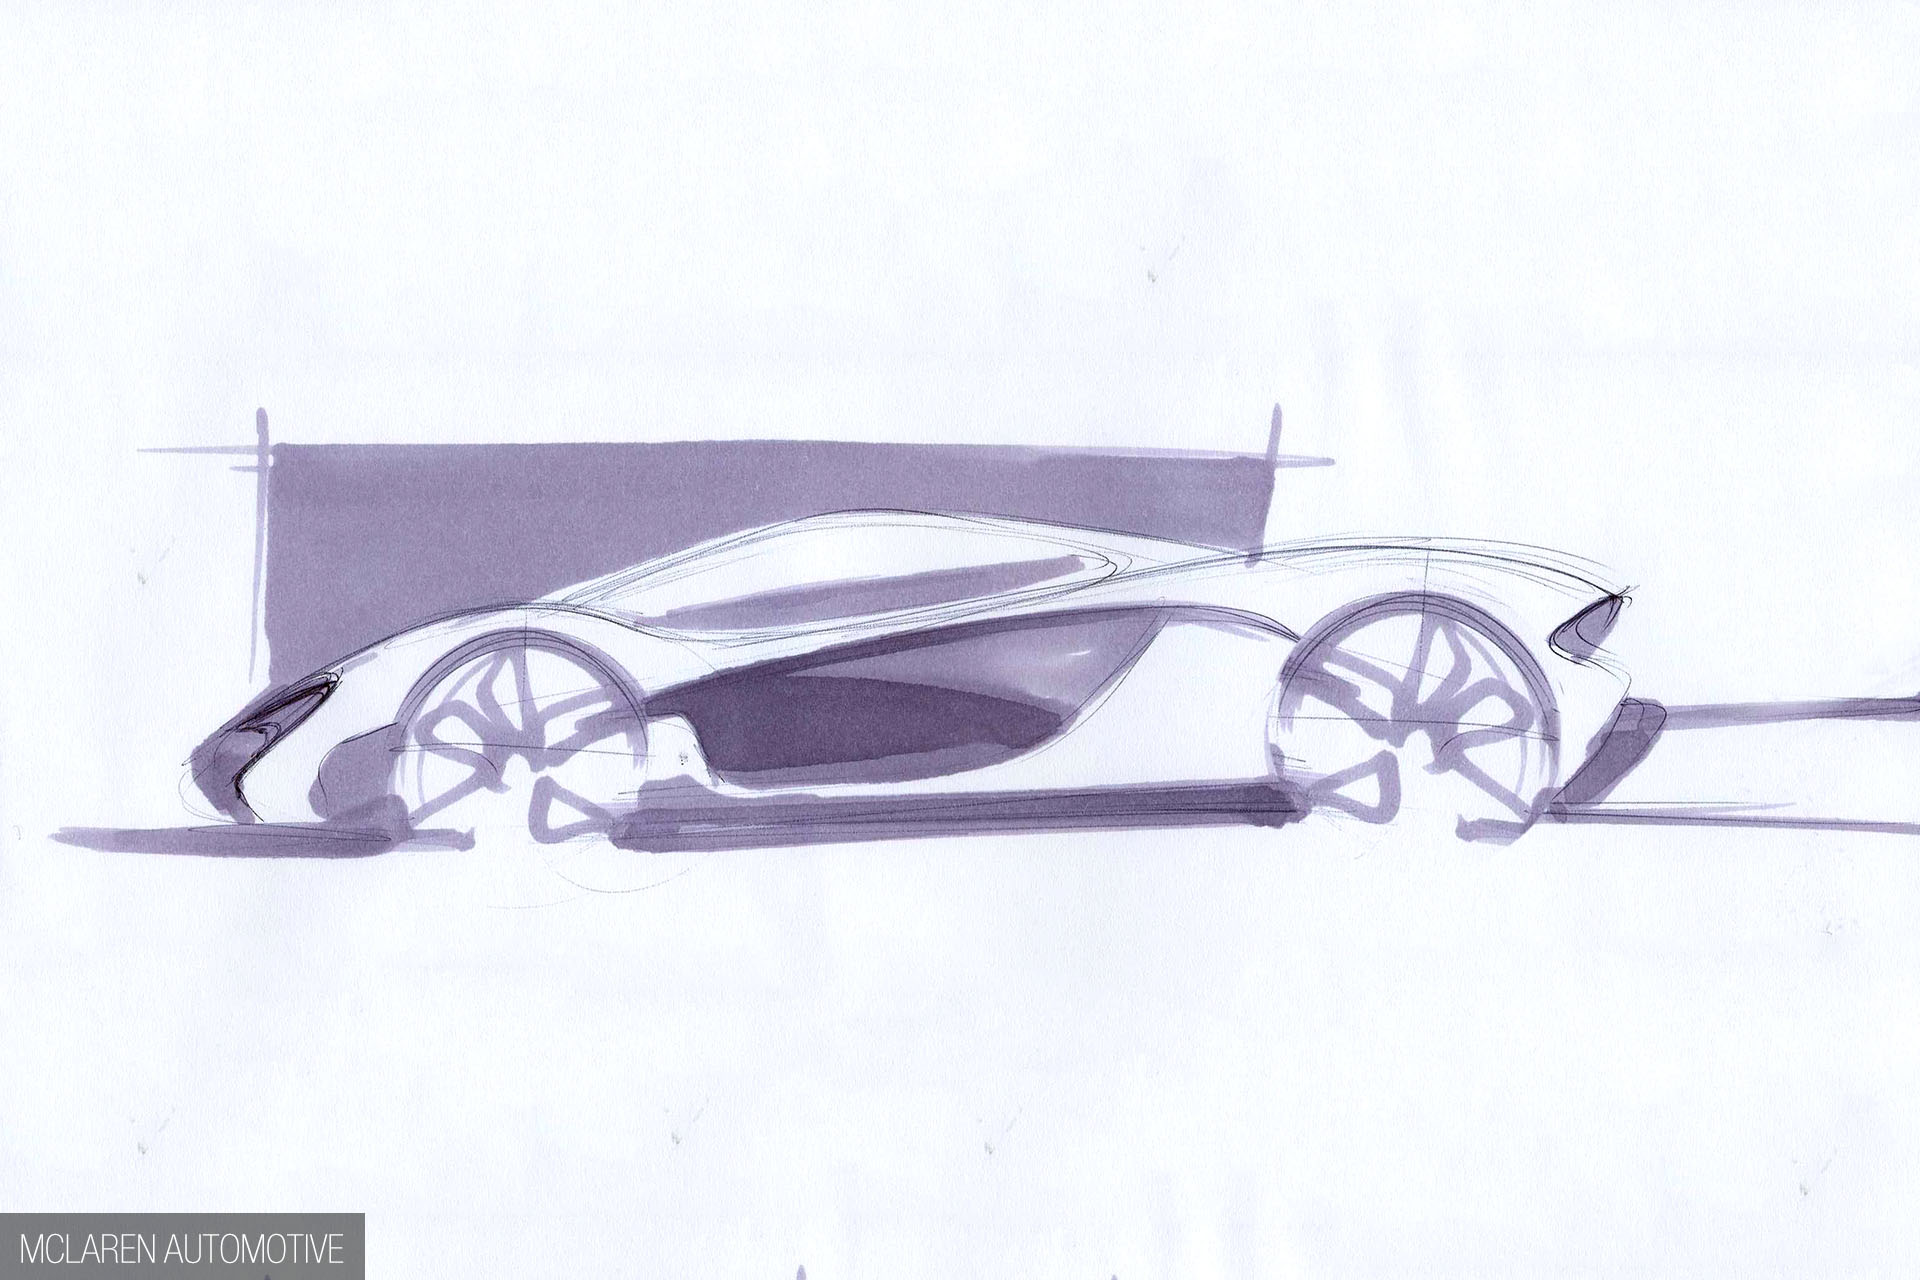 McLaren P1 - 2012 - sketch - side-face design